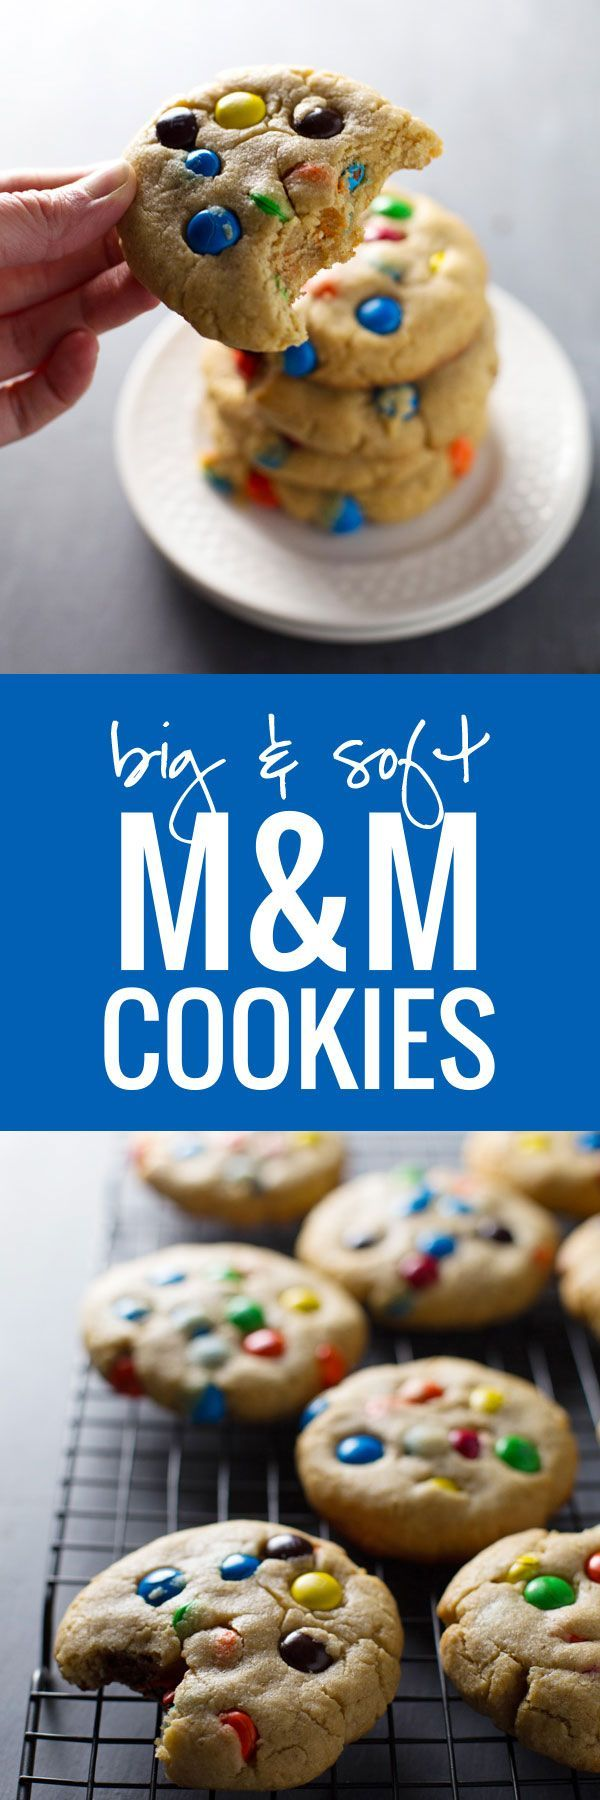 M&M Cookies: These are soft cookie recipes. Better then the expensive ones in the store.